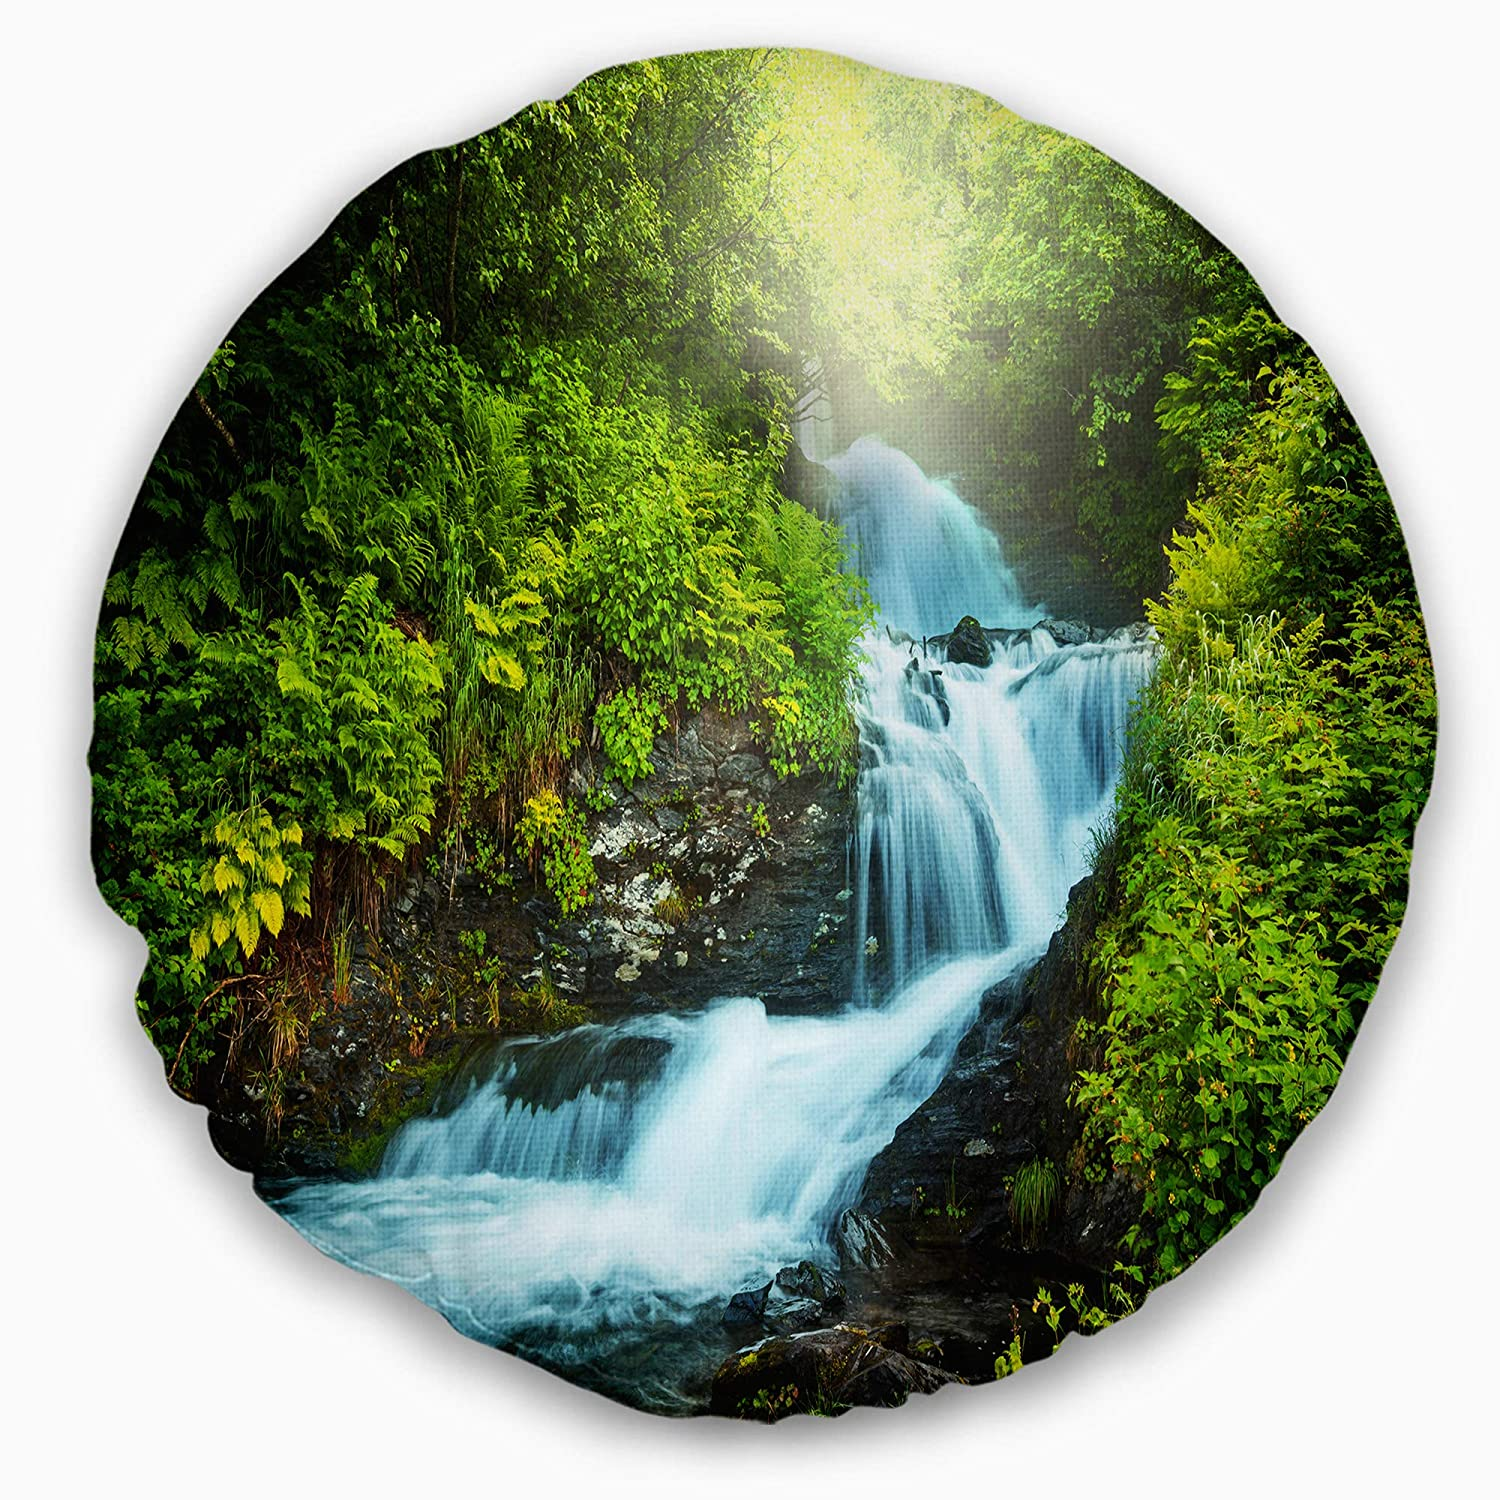 Sofa Throw Pillow 20 Insert Side Designart CU12909-20-20-C Blue Creek in Green Rain Forest Landscape Printed Round Cushion Cover for Living Room